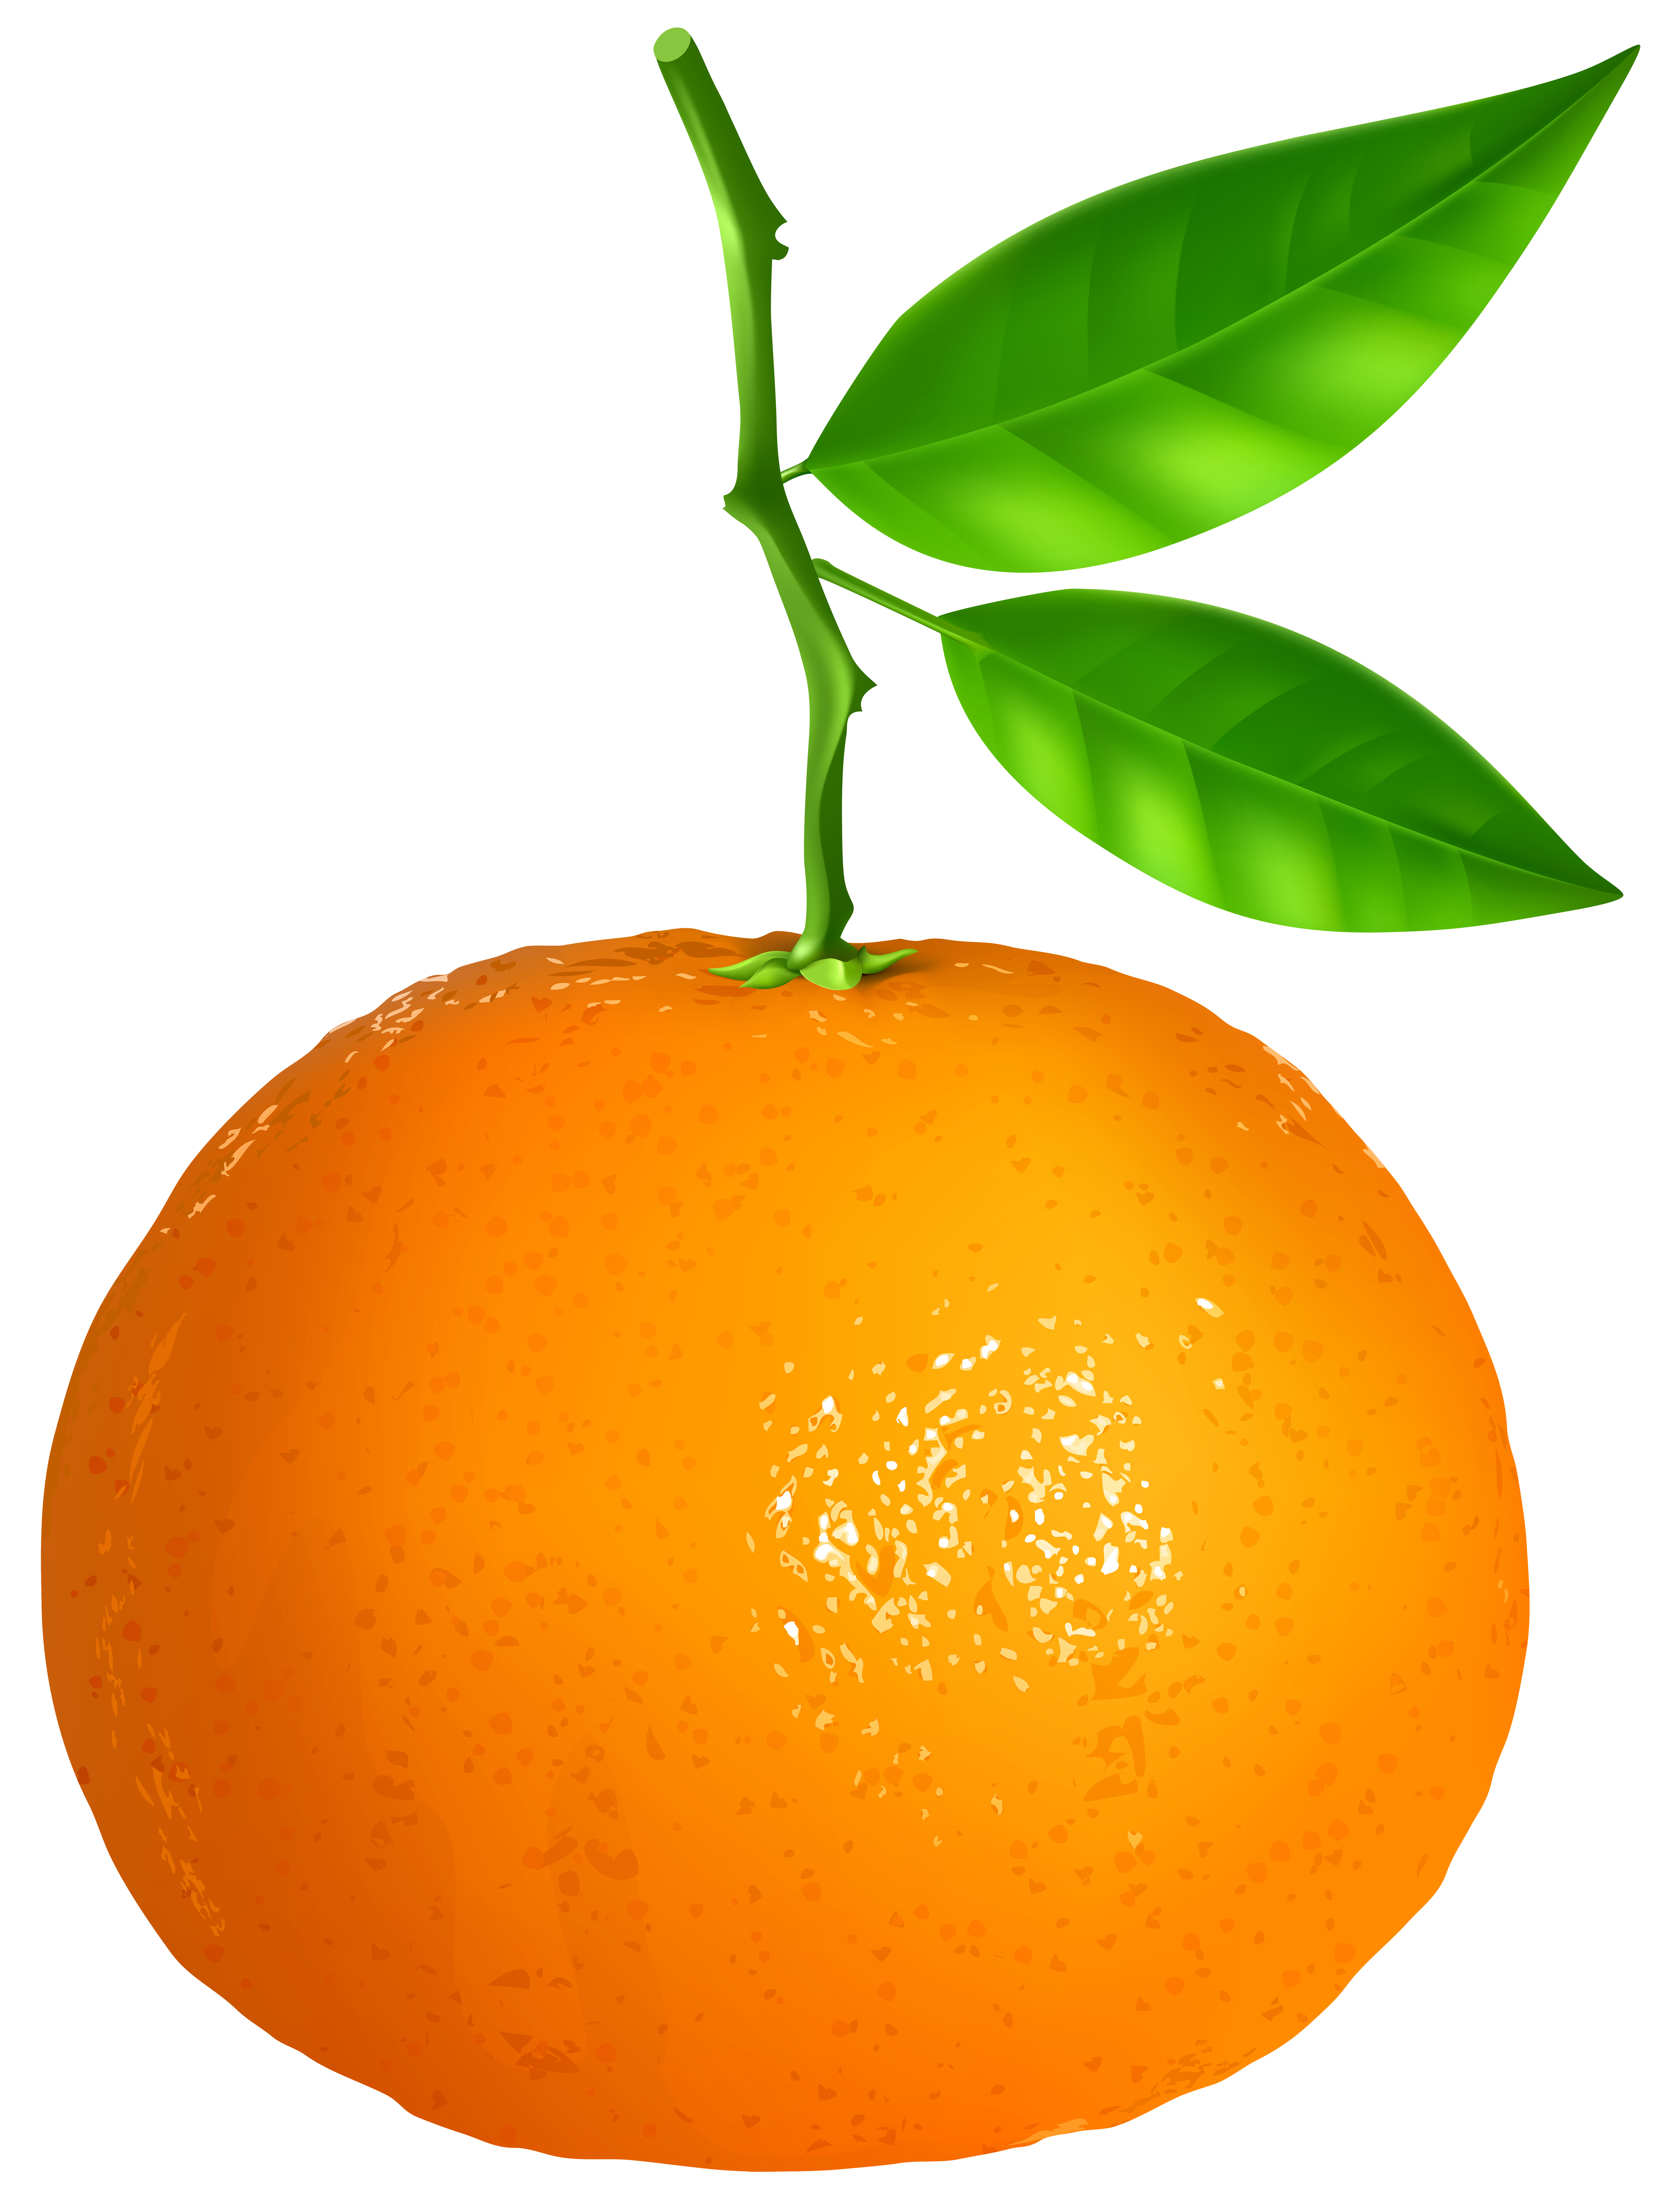 Tangerine clipart Clip full Transparent View PNG